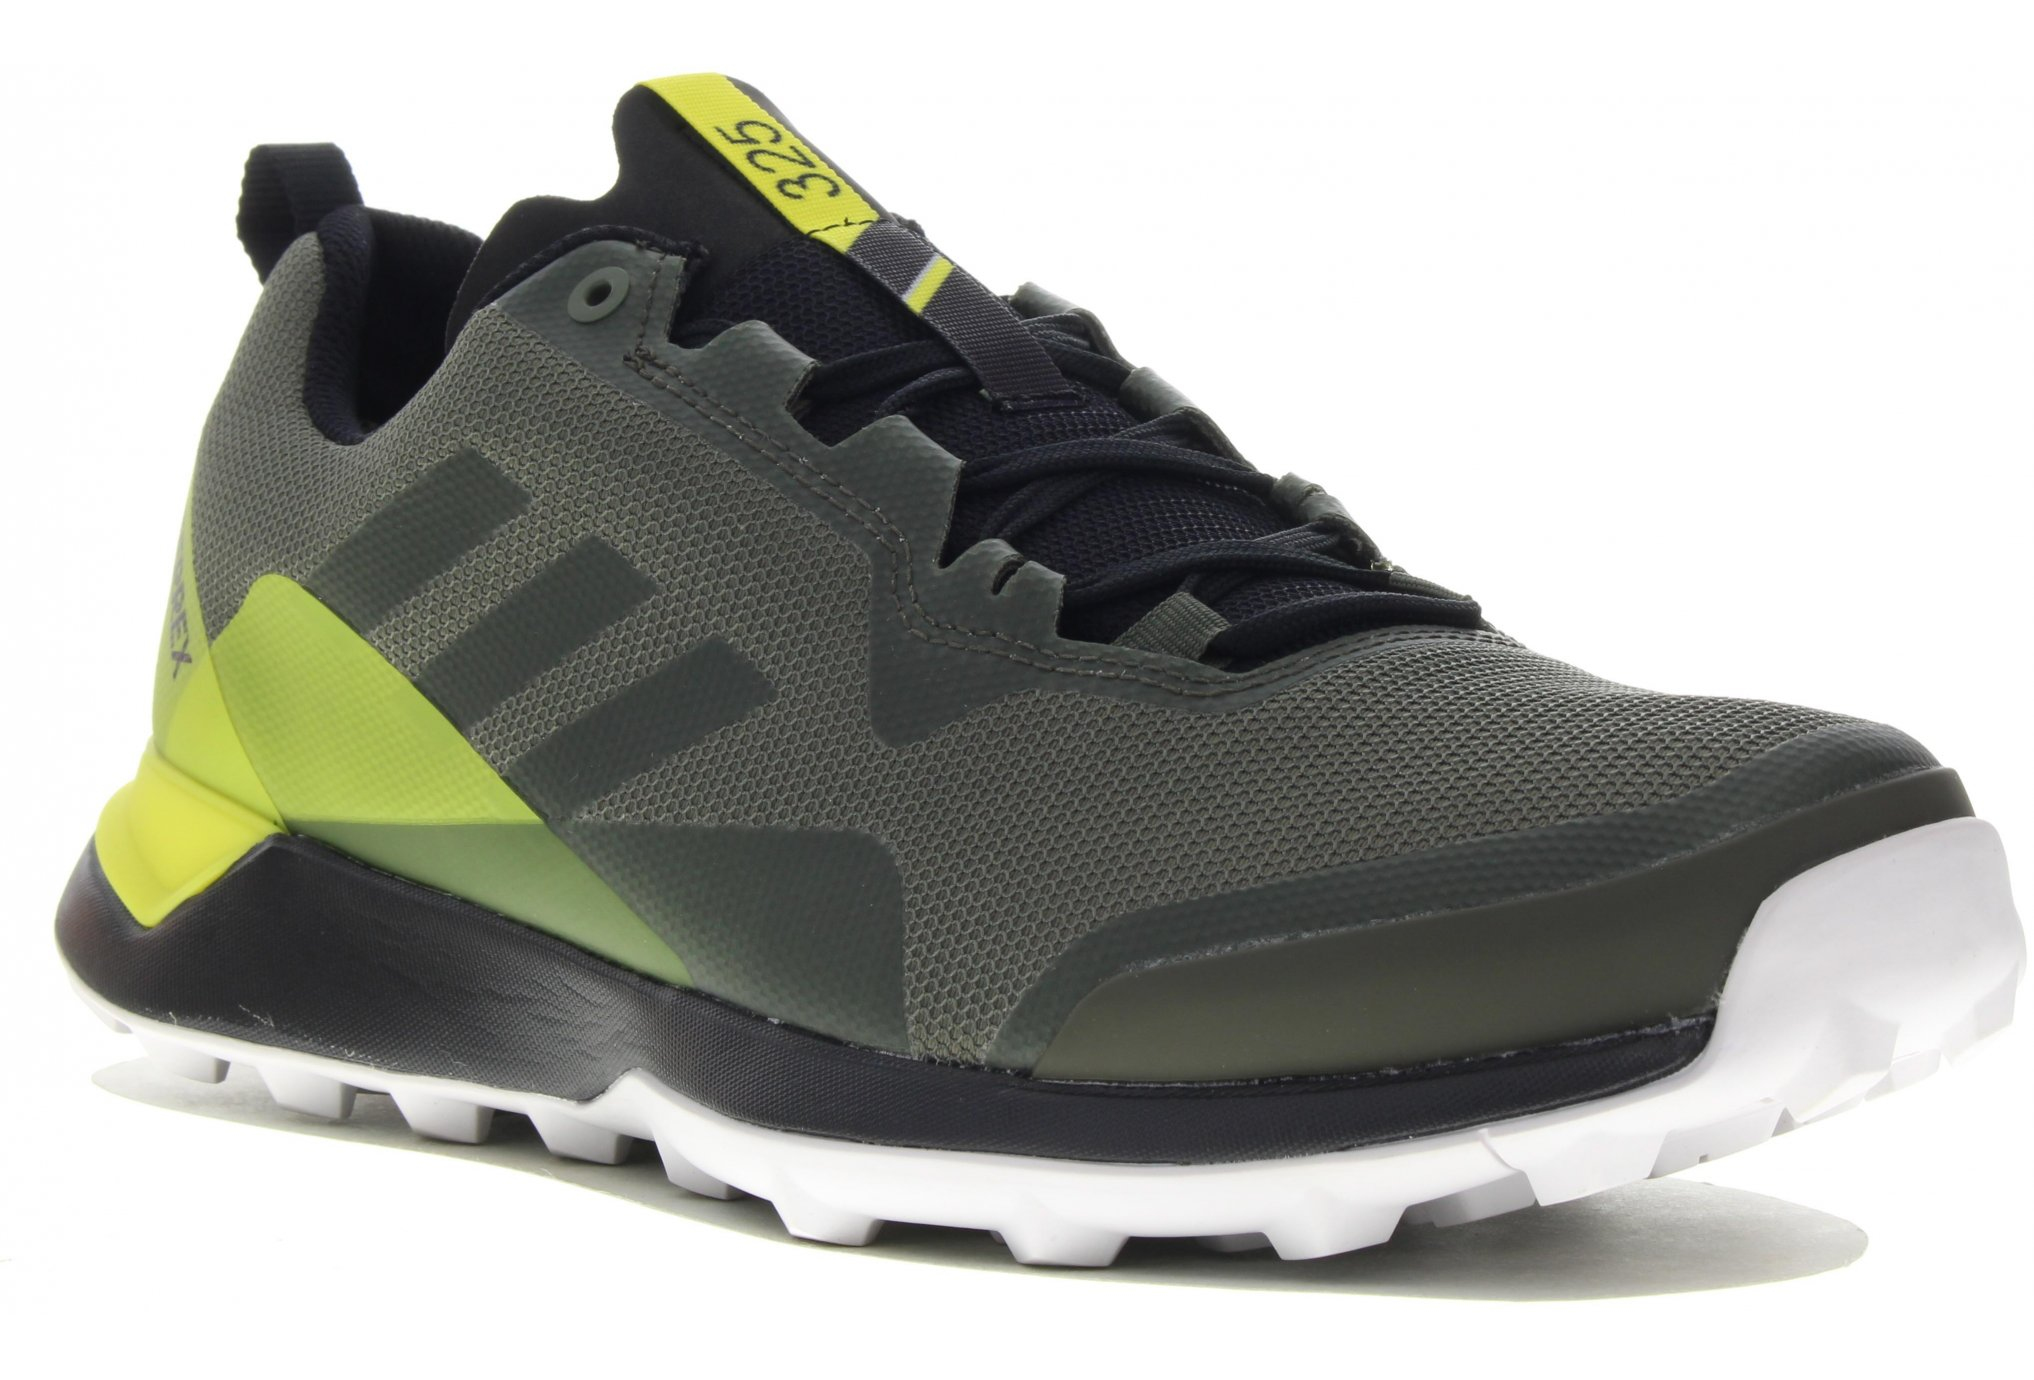 timeless design 6f821 bba61 adidas Terrex CMTK Gore-Tex M Chaussures homme